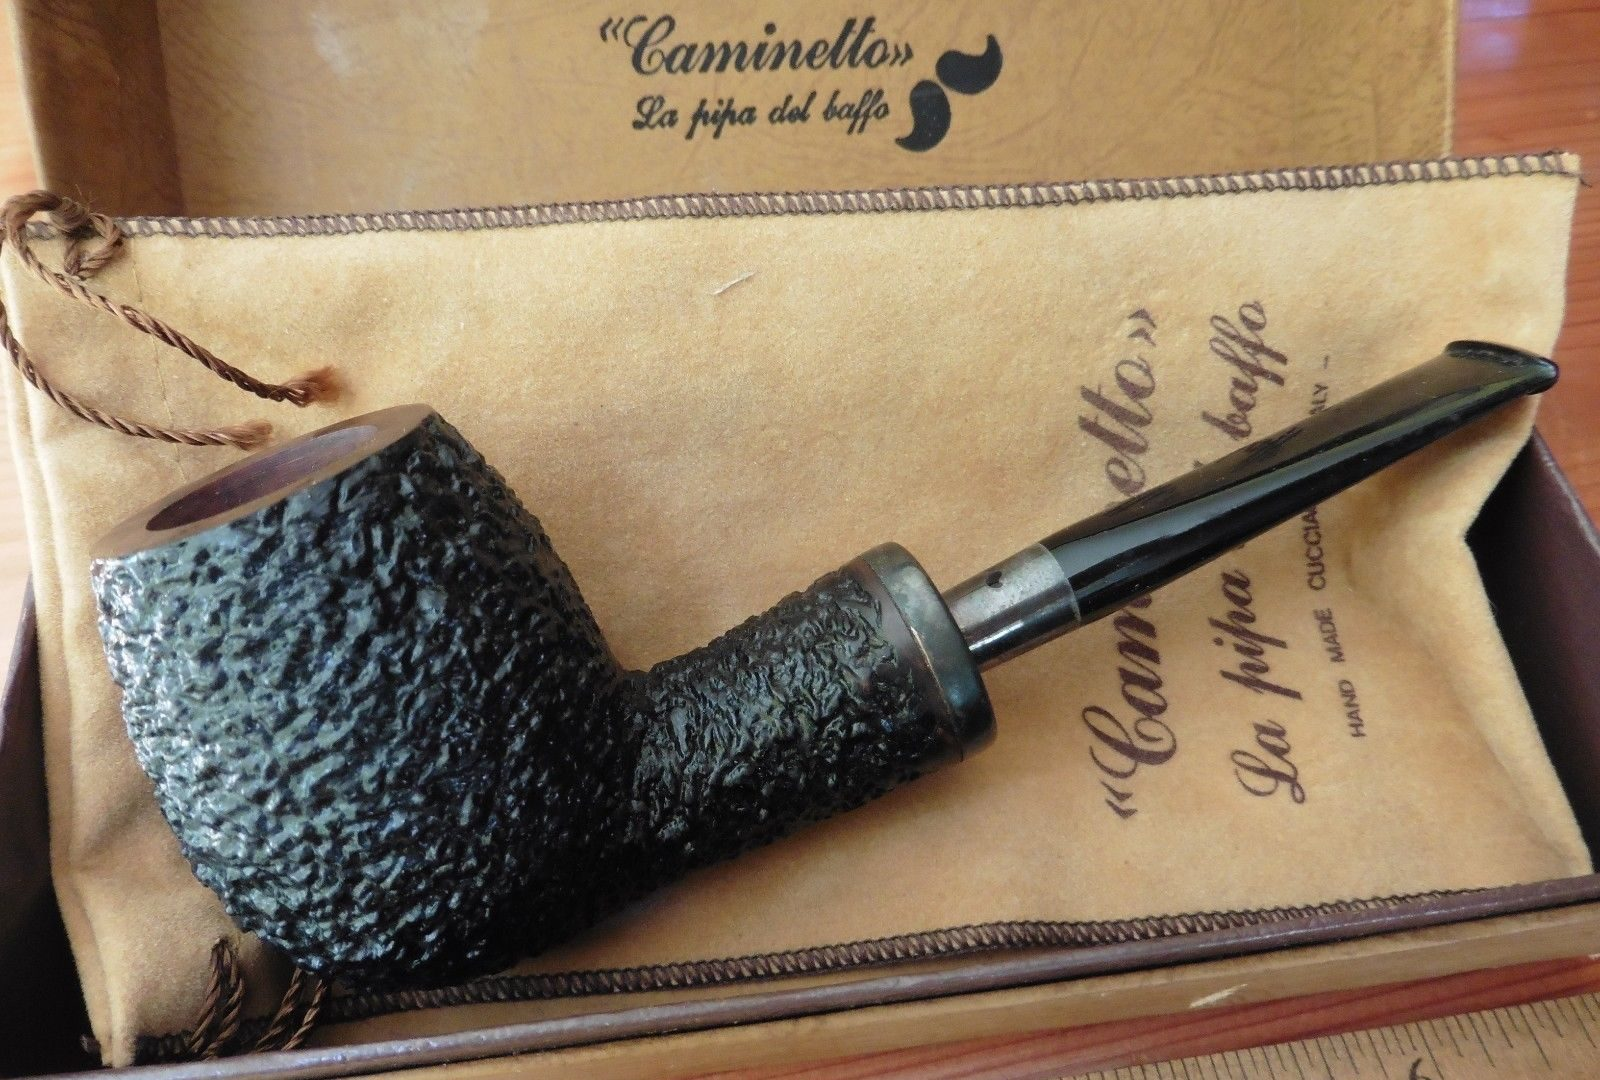 Caminetto pipe 50th Anniversary (natural)